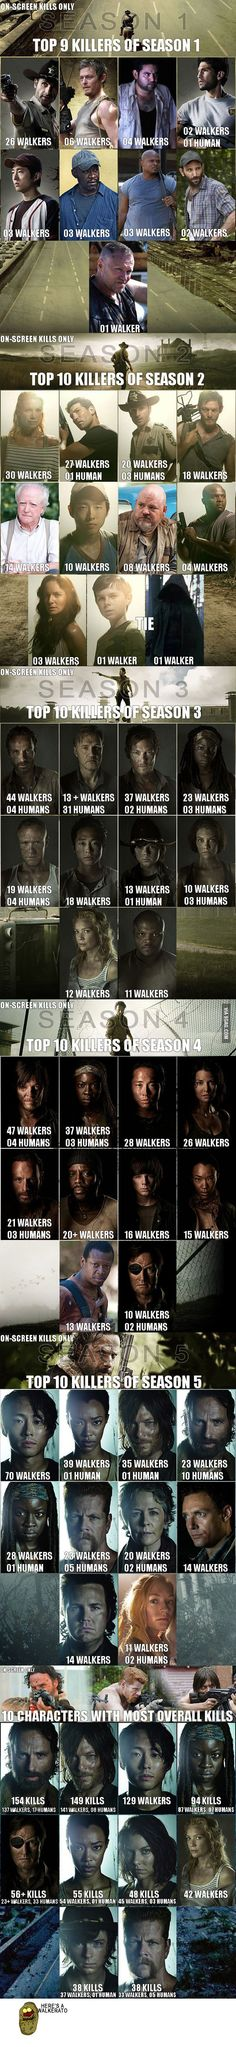 TWD top 10 Characters with most on-screen kills/season plus kills for all seasons combined.